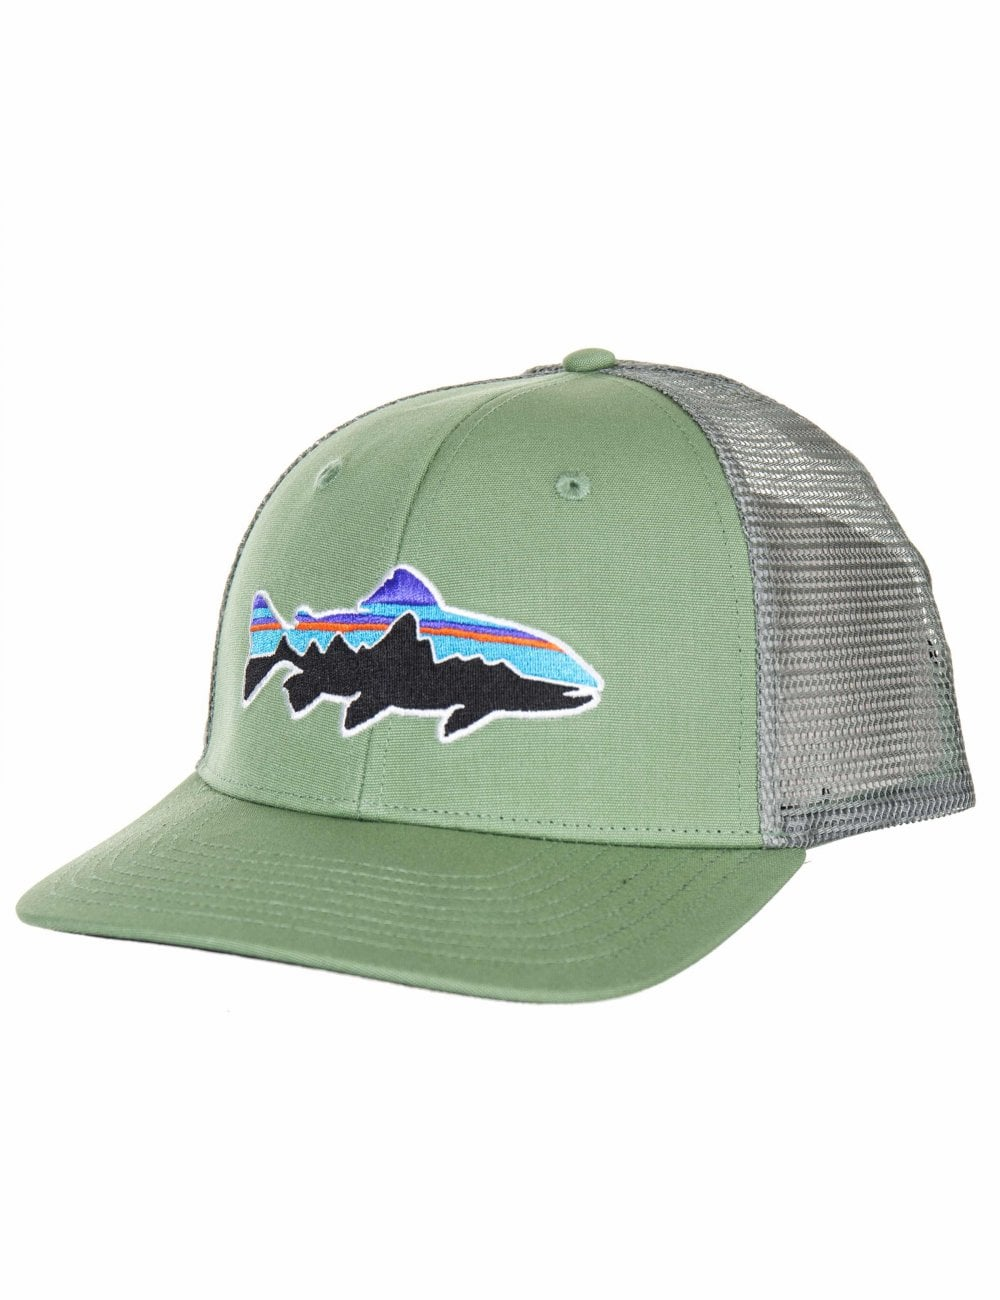 7048a5ec2cc92 Patagonia Fitz Roy Trout Trucker Hat - Matcha Green - Accessories ...